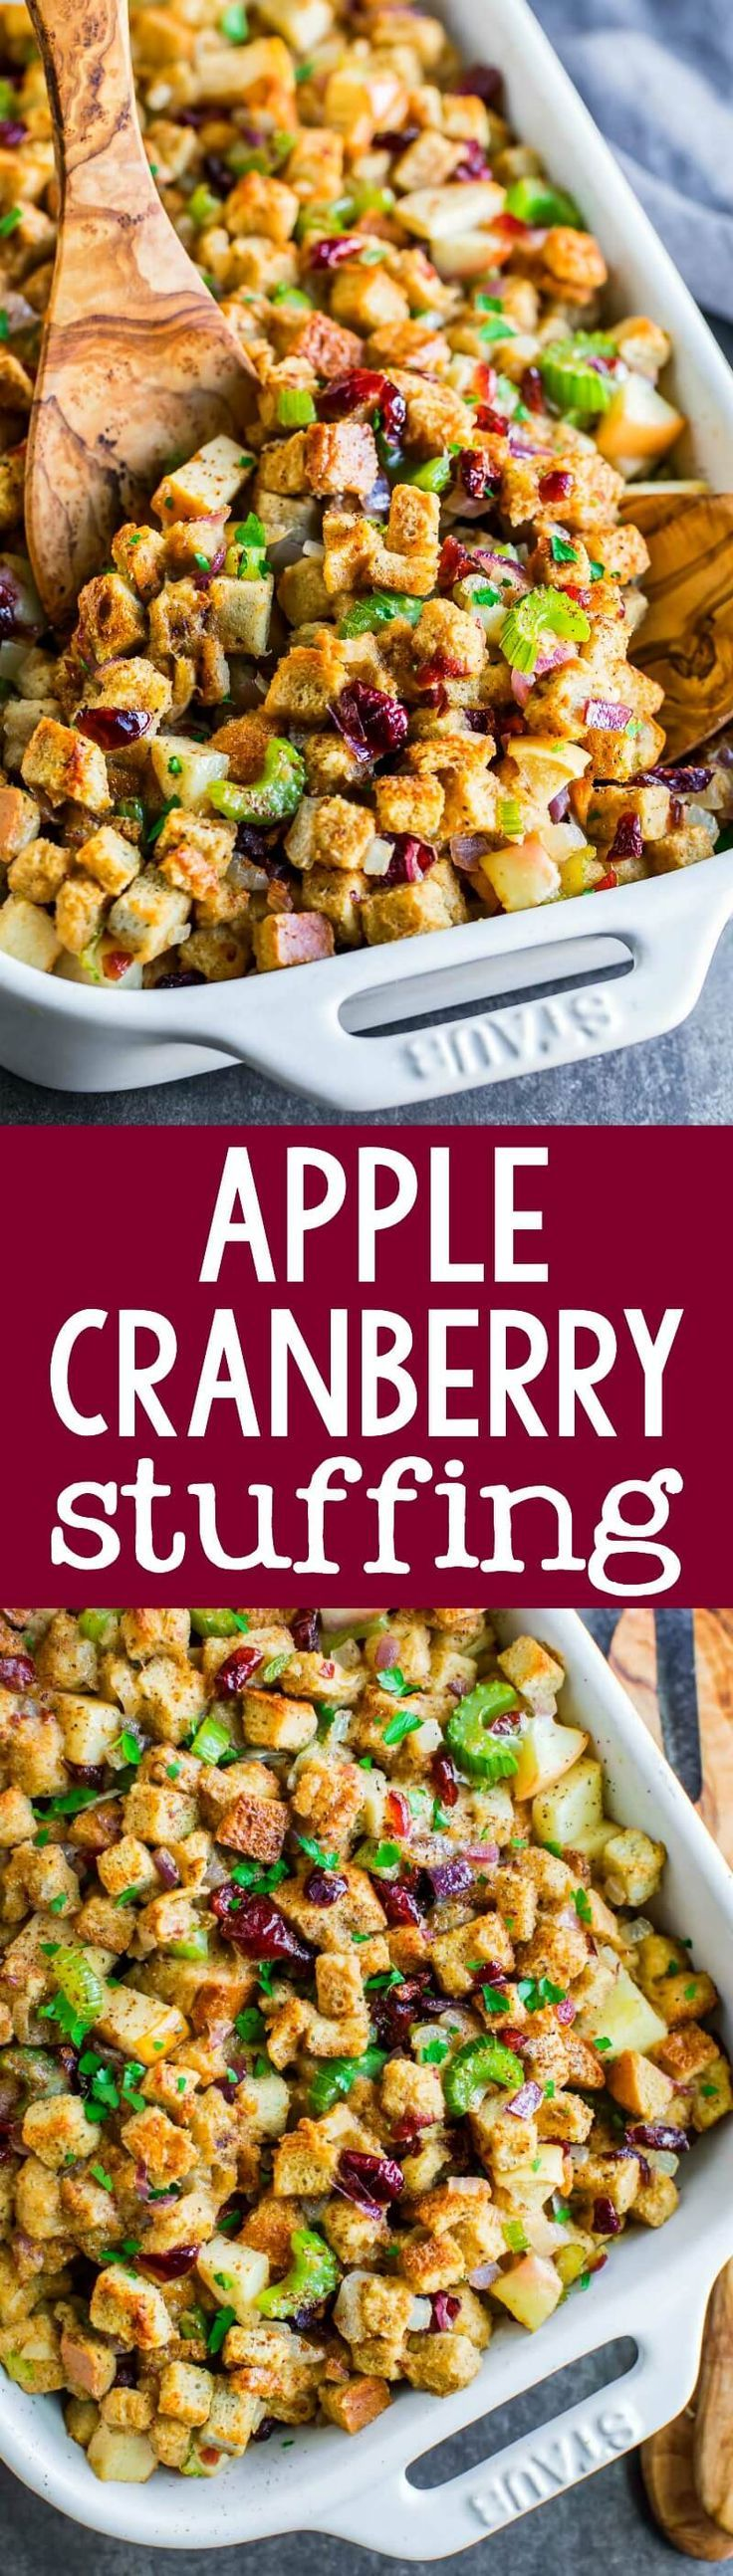 This sweet and savory baked apple cranberry stuffing combines the best of both worlds! Sweet apples and cranberries kissed with cinnamon and baked into a warm Thanksgiving stuffing... it's DELICIOUS.